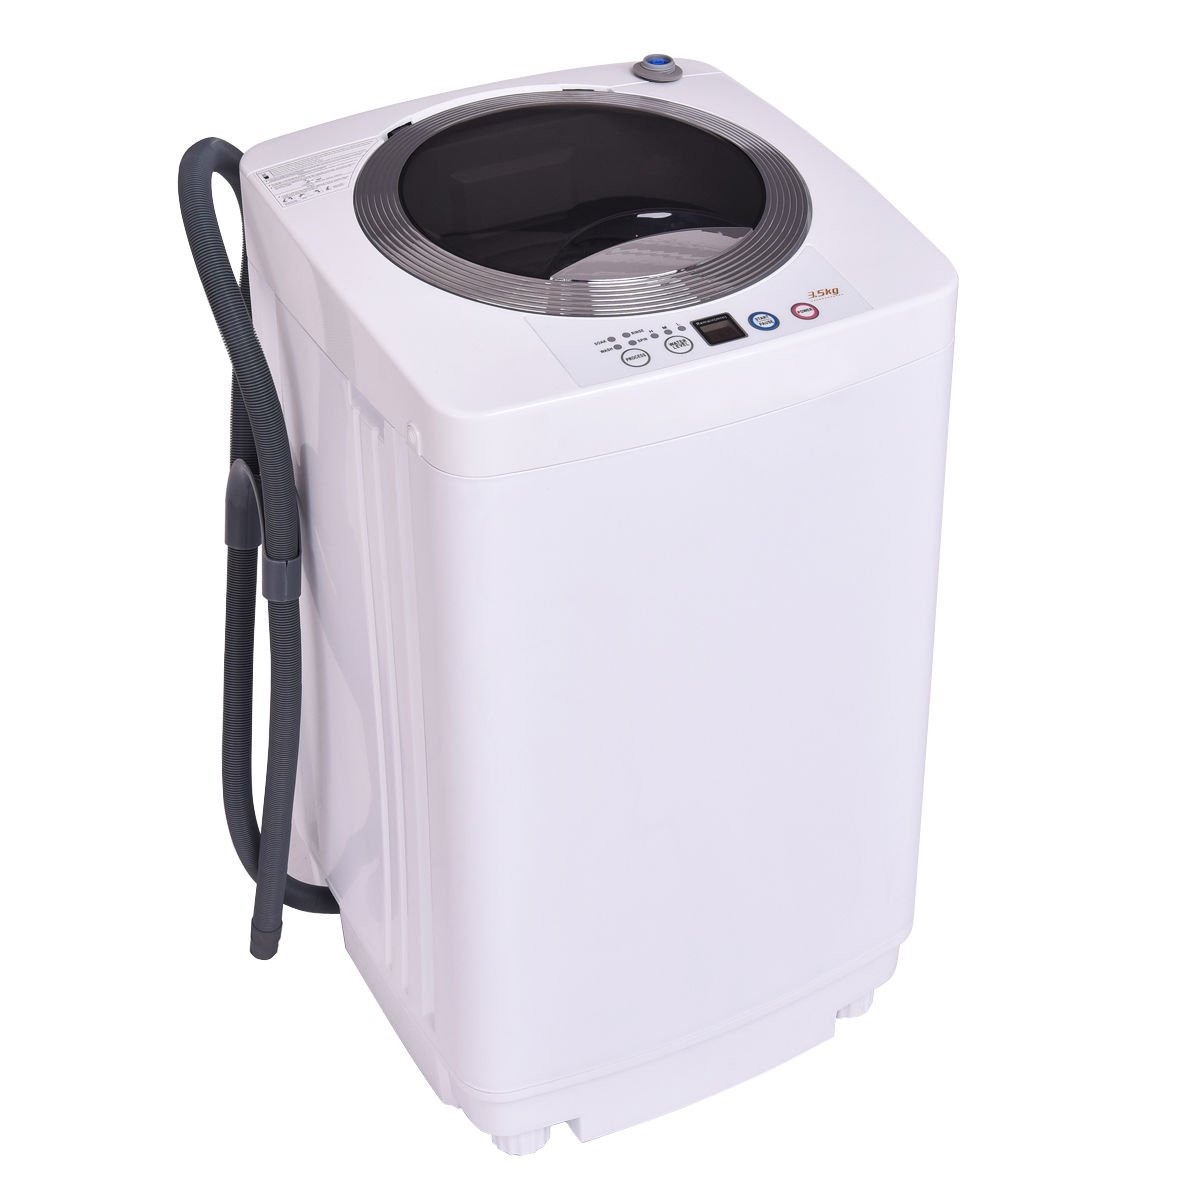 Giantex Portable Compact Full-Automatic Laundry 1.6 Cu. ft. Washing Machine 8 Lbs Washer/Spinner W/Drain Pump by Giantex